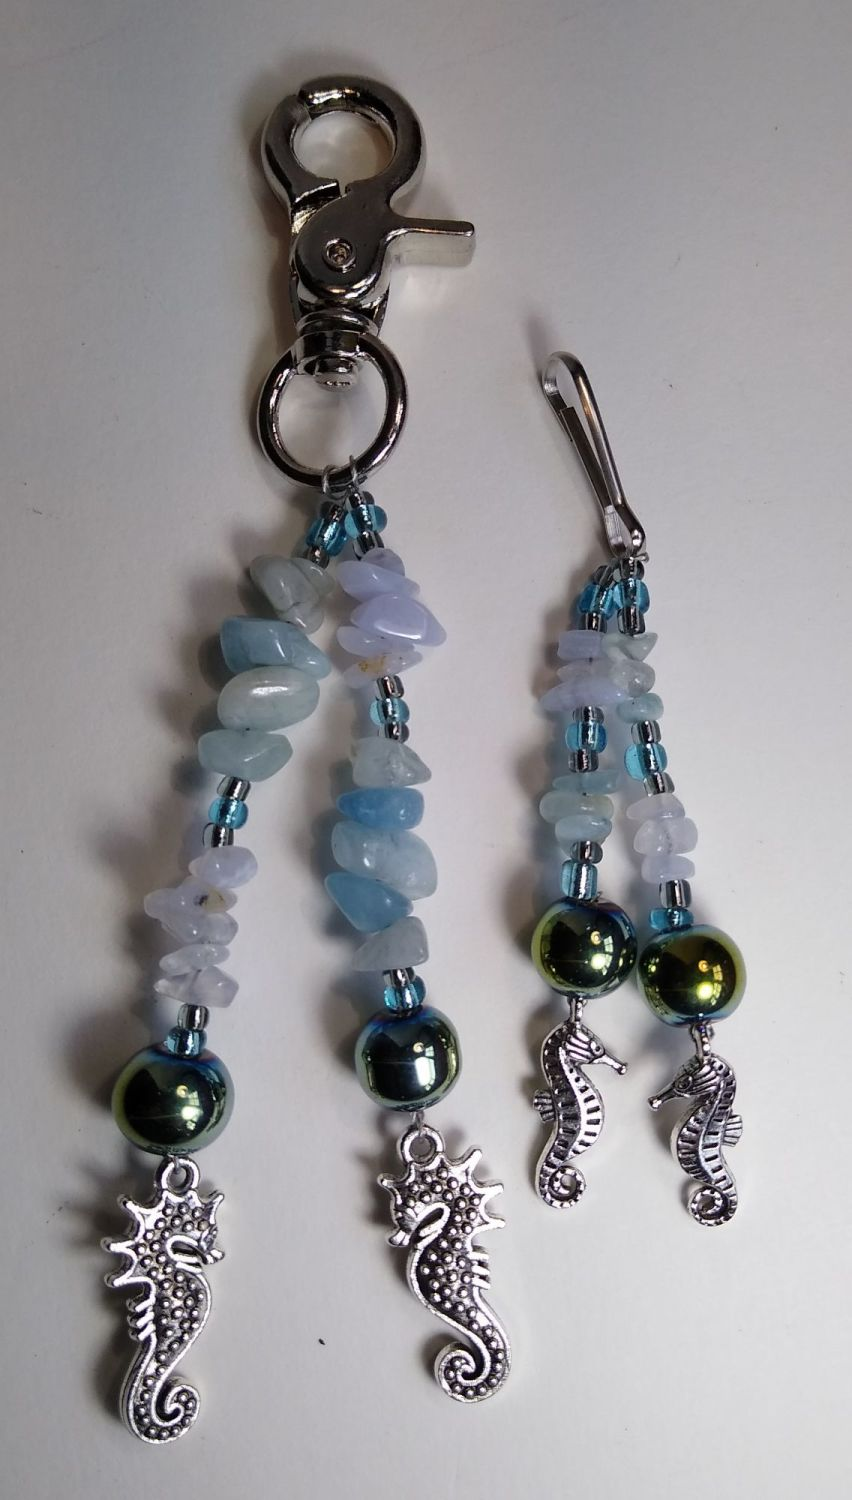 SEAHORSES HEADCOLLAR AND BRIDLE CHARMS.